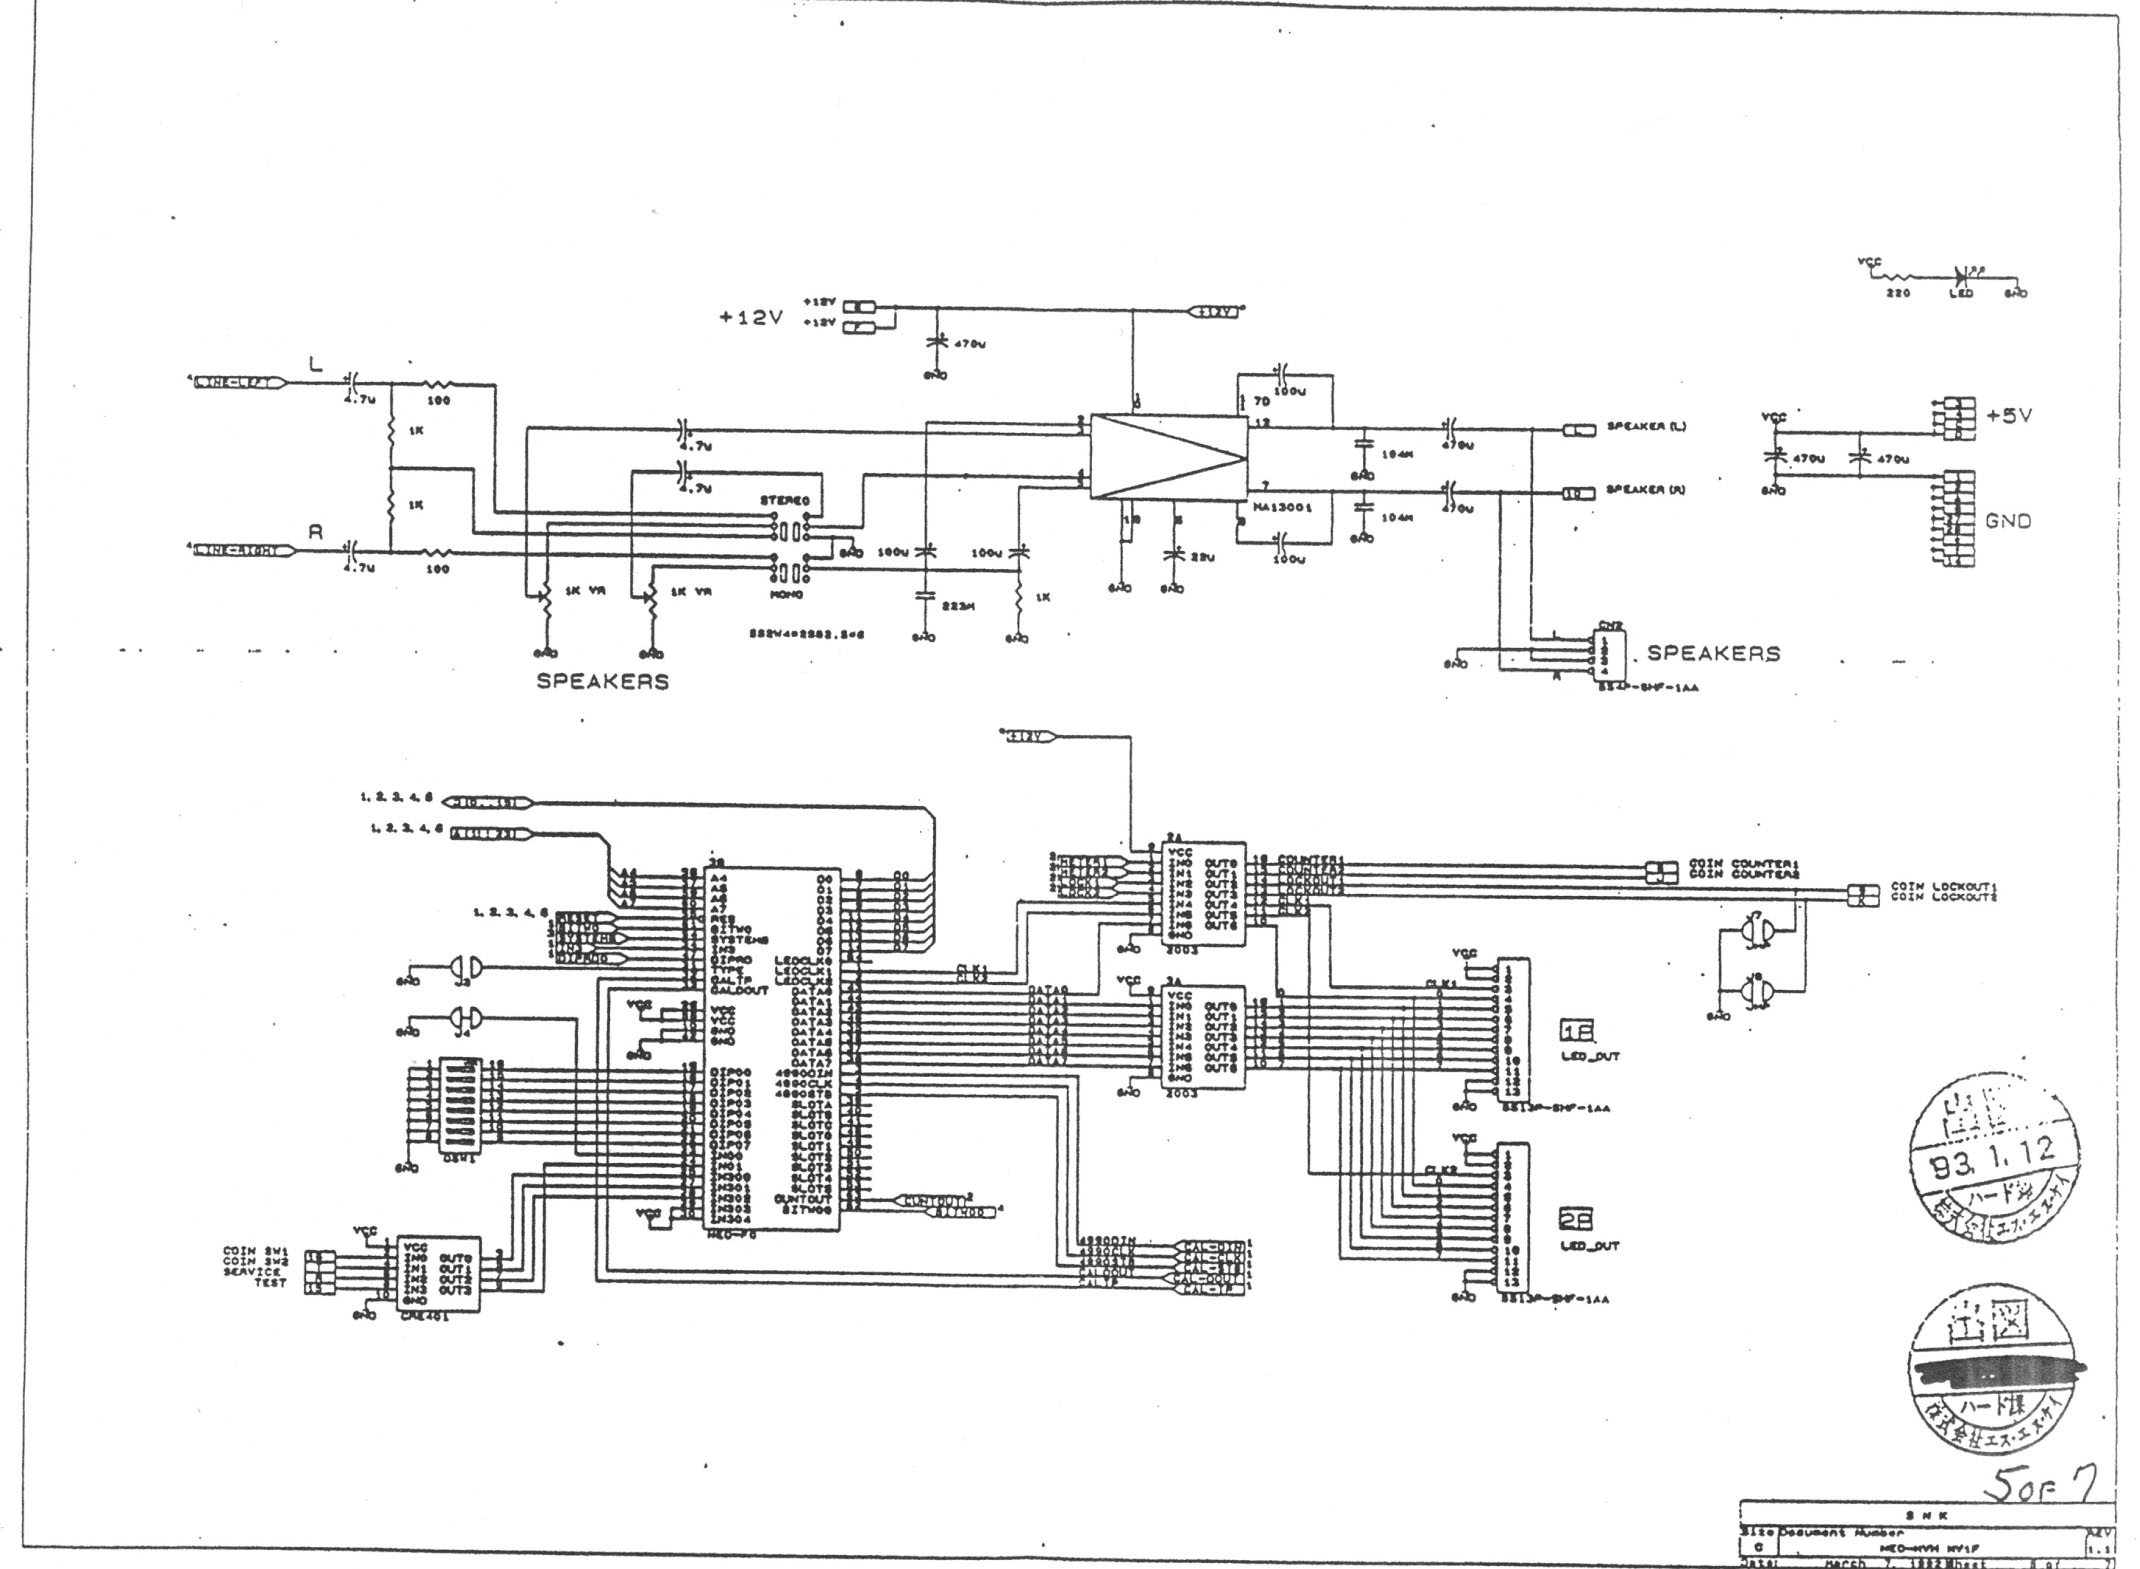 schematics console related schematics nfg games gamesx mvs mv1fs schematic page 5